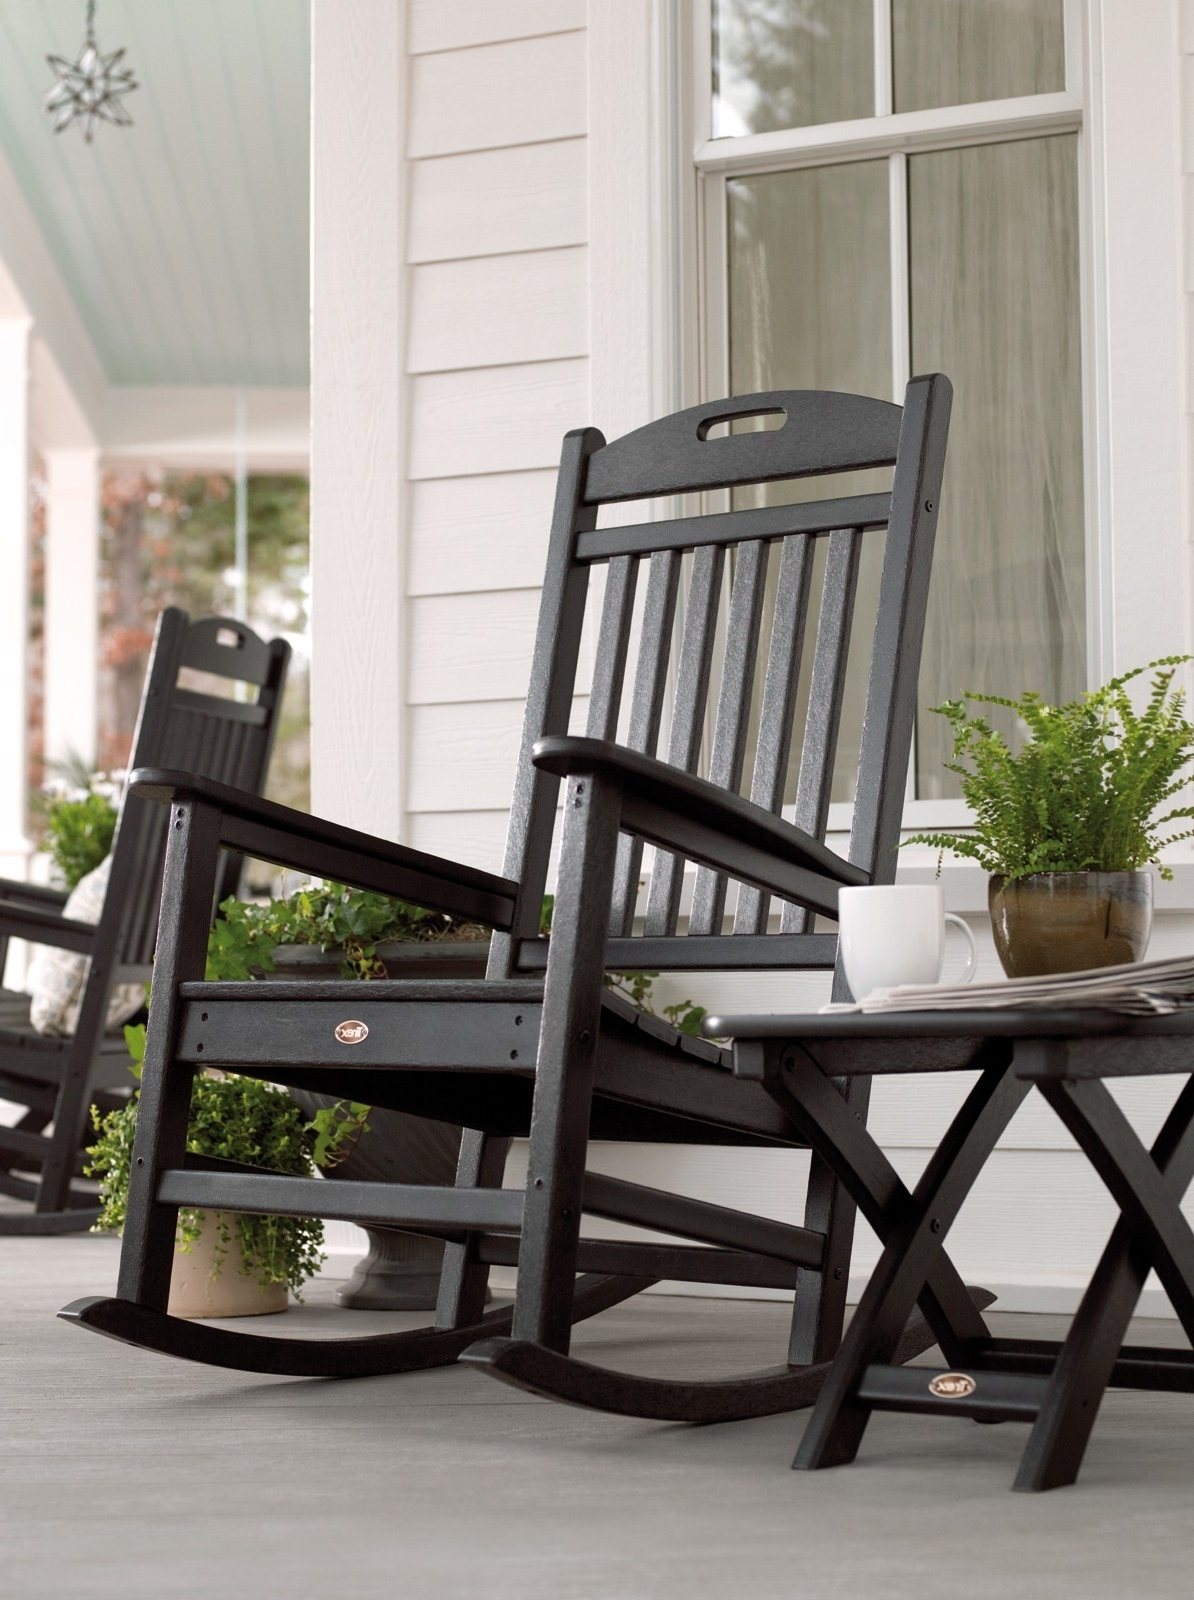 Outdoor Rocking Chairs Regarding Latest Outdoor Rocking Chair (View 9 of 15)